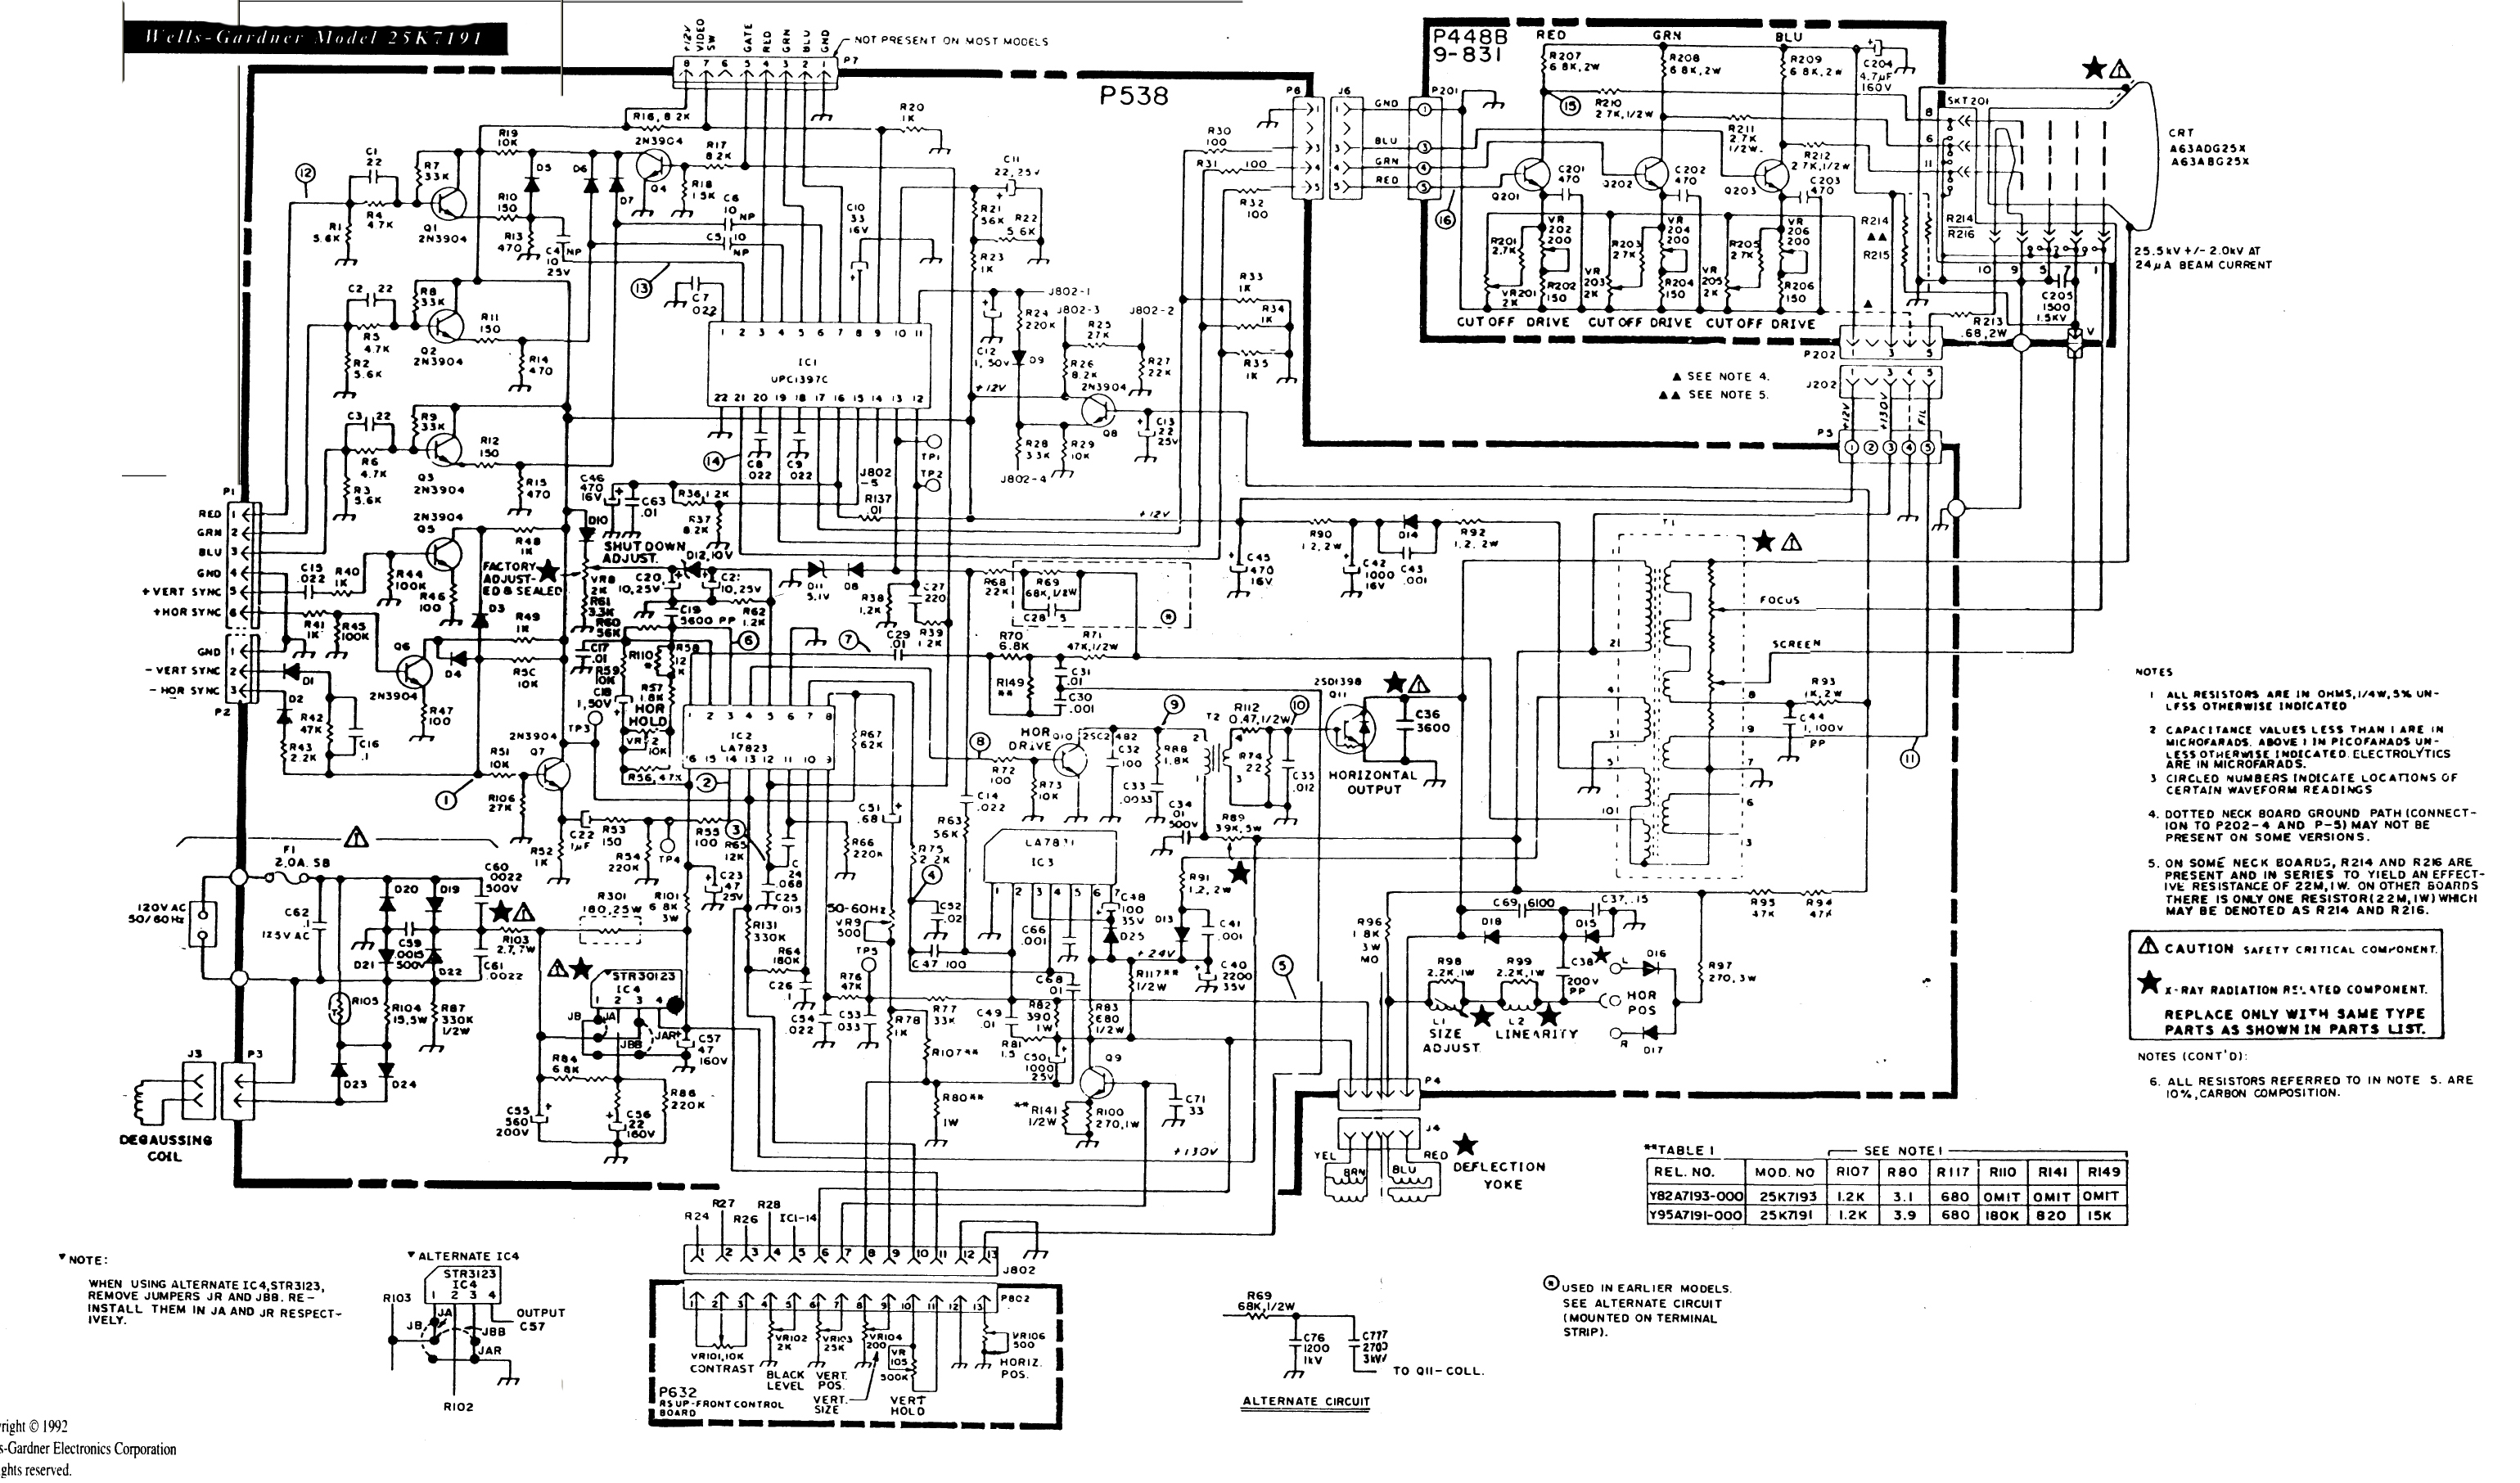 k7191 complete_lg_ jake's wg 25k7191 info battery monitor circuit diagram at readyjetset.co